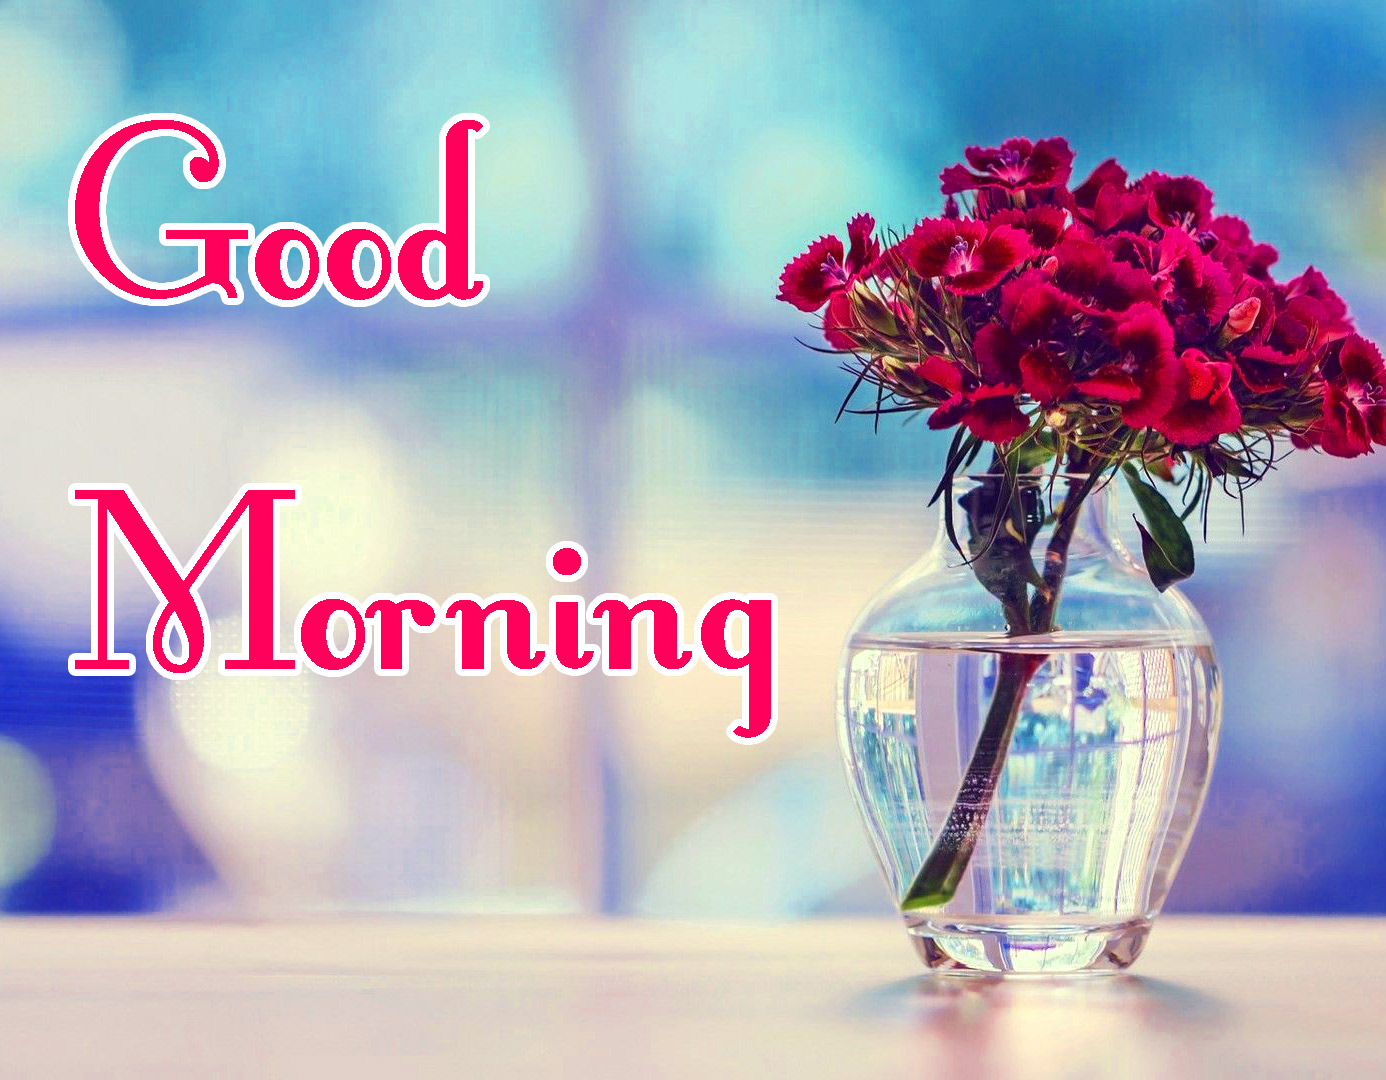 Beautiful Free good Morning Images With Flower